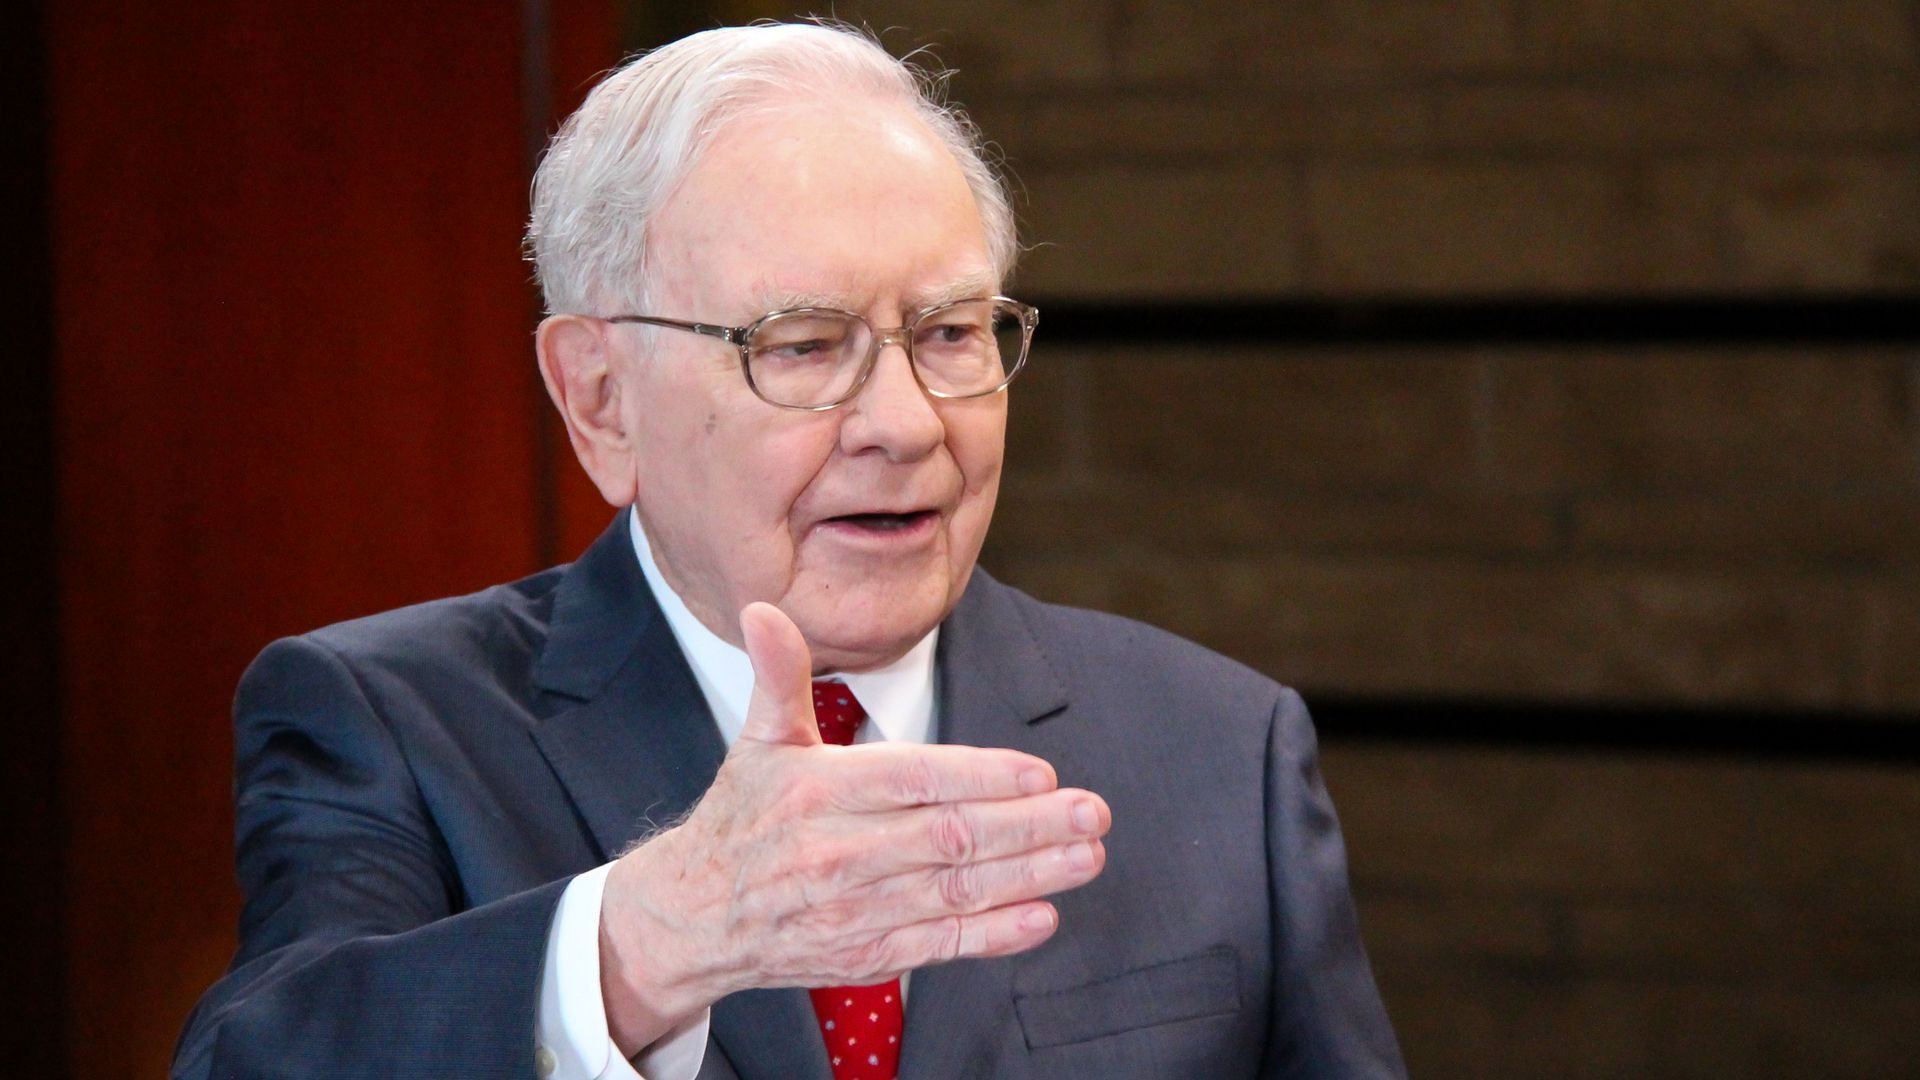 Warren buffett in a suit